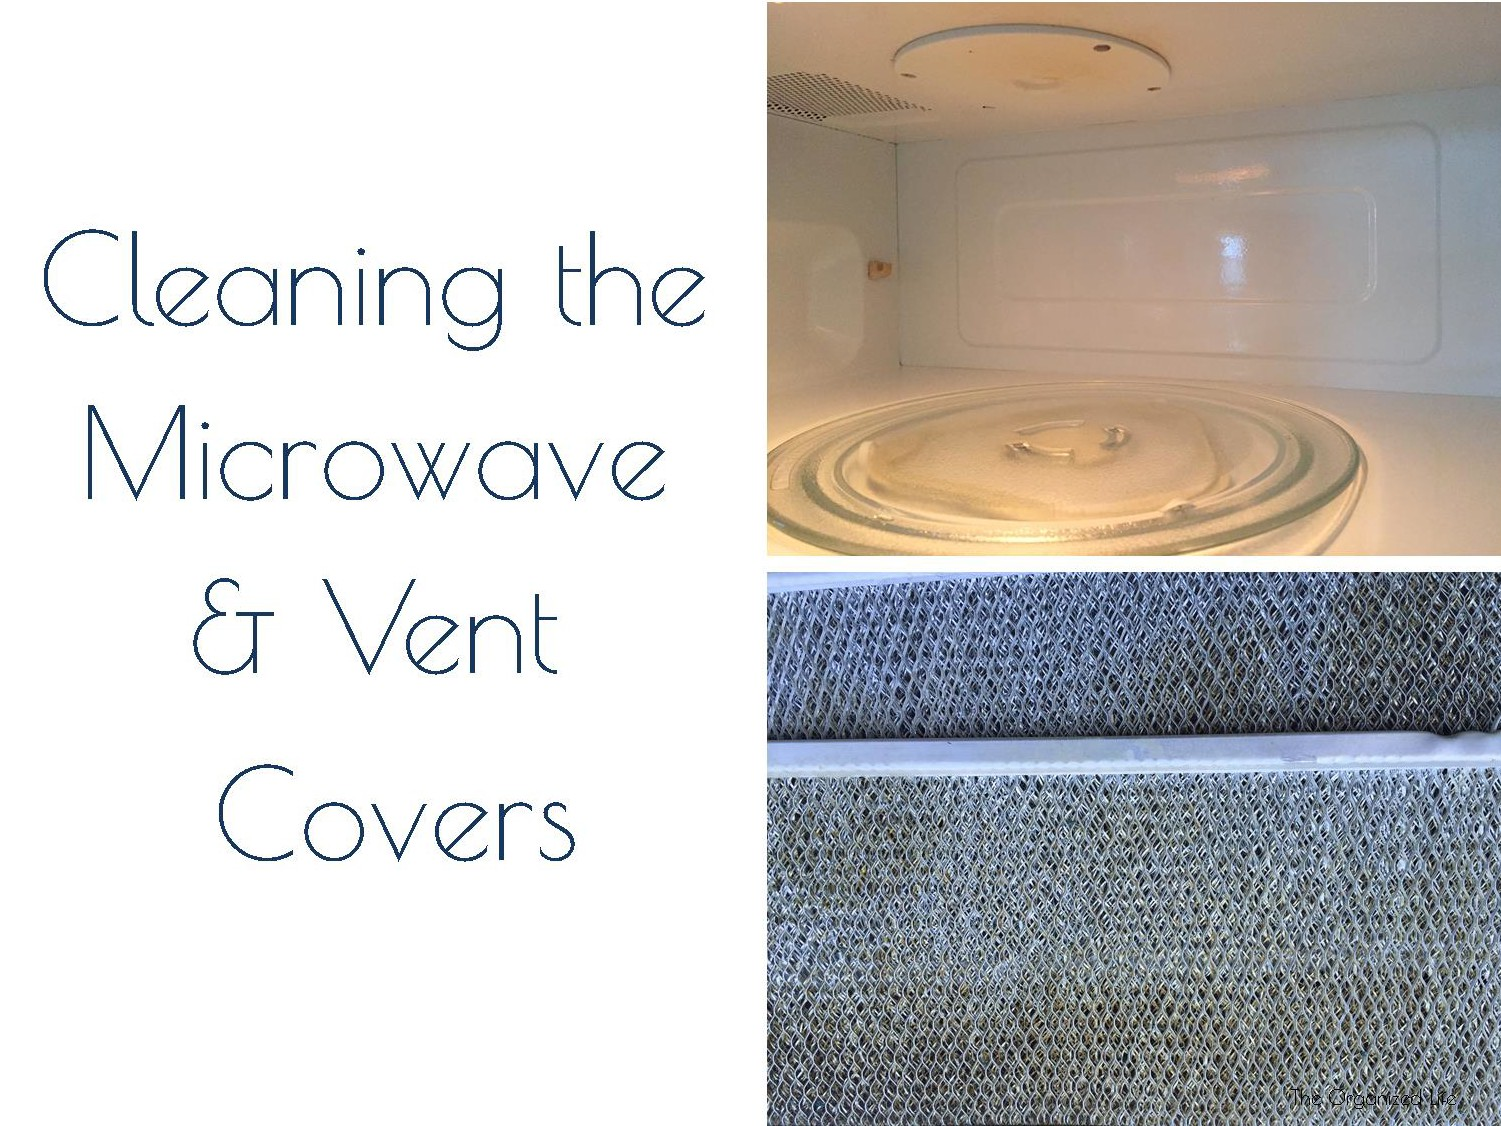 Cleaning the Microwave and Vent Covers